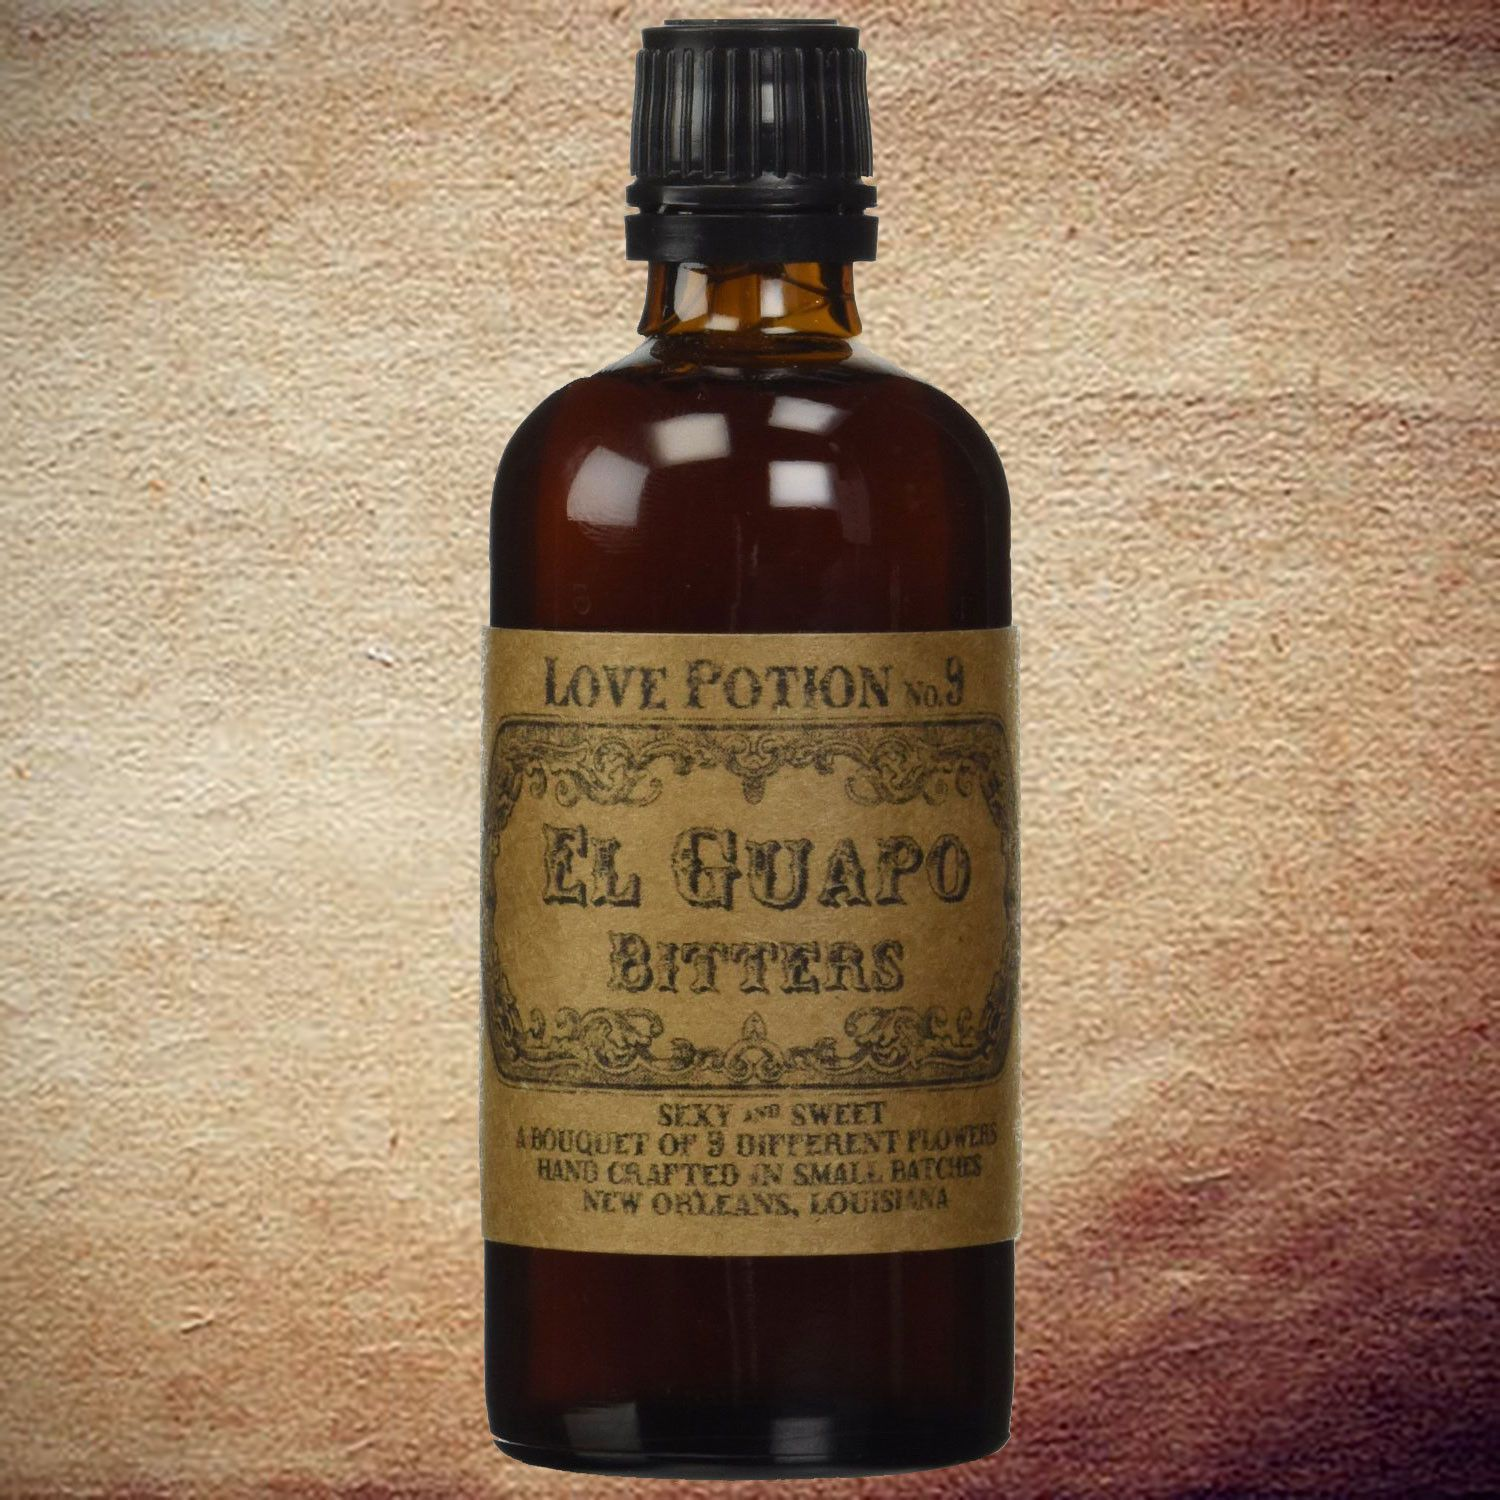 Love Potion No. 9 Bitters